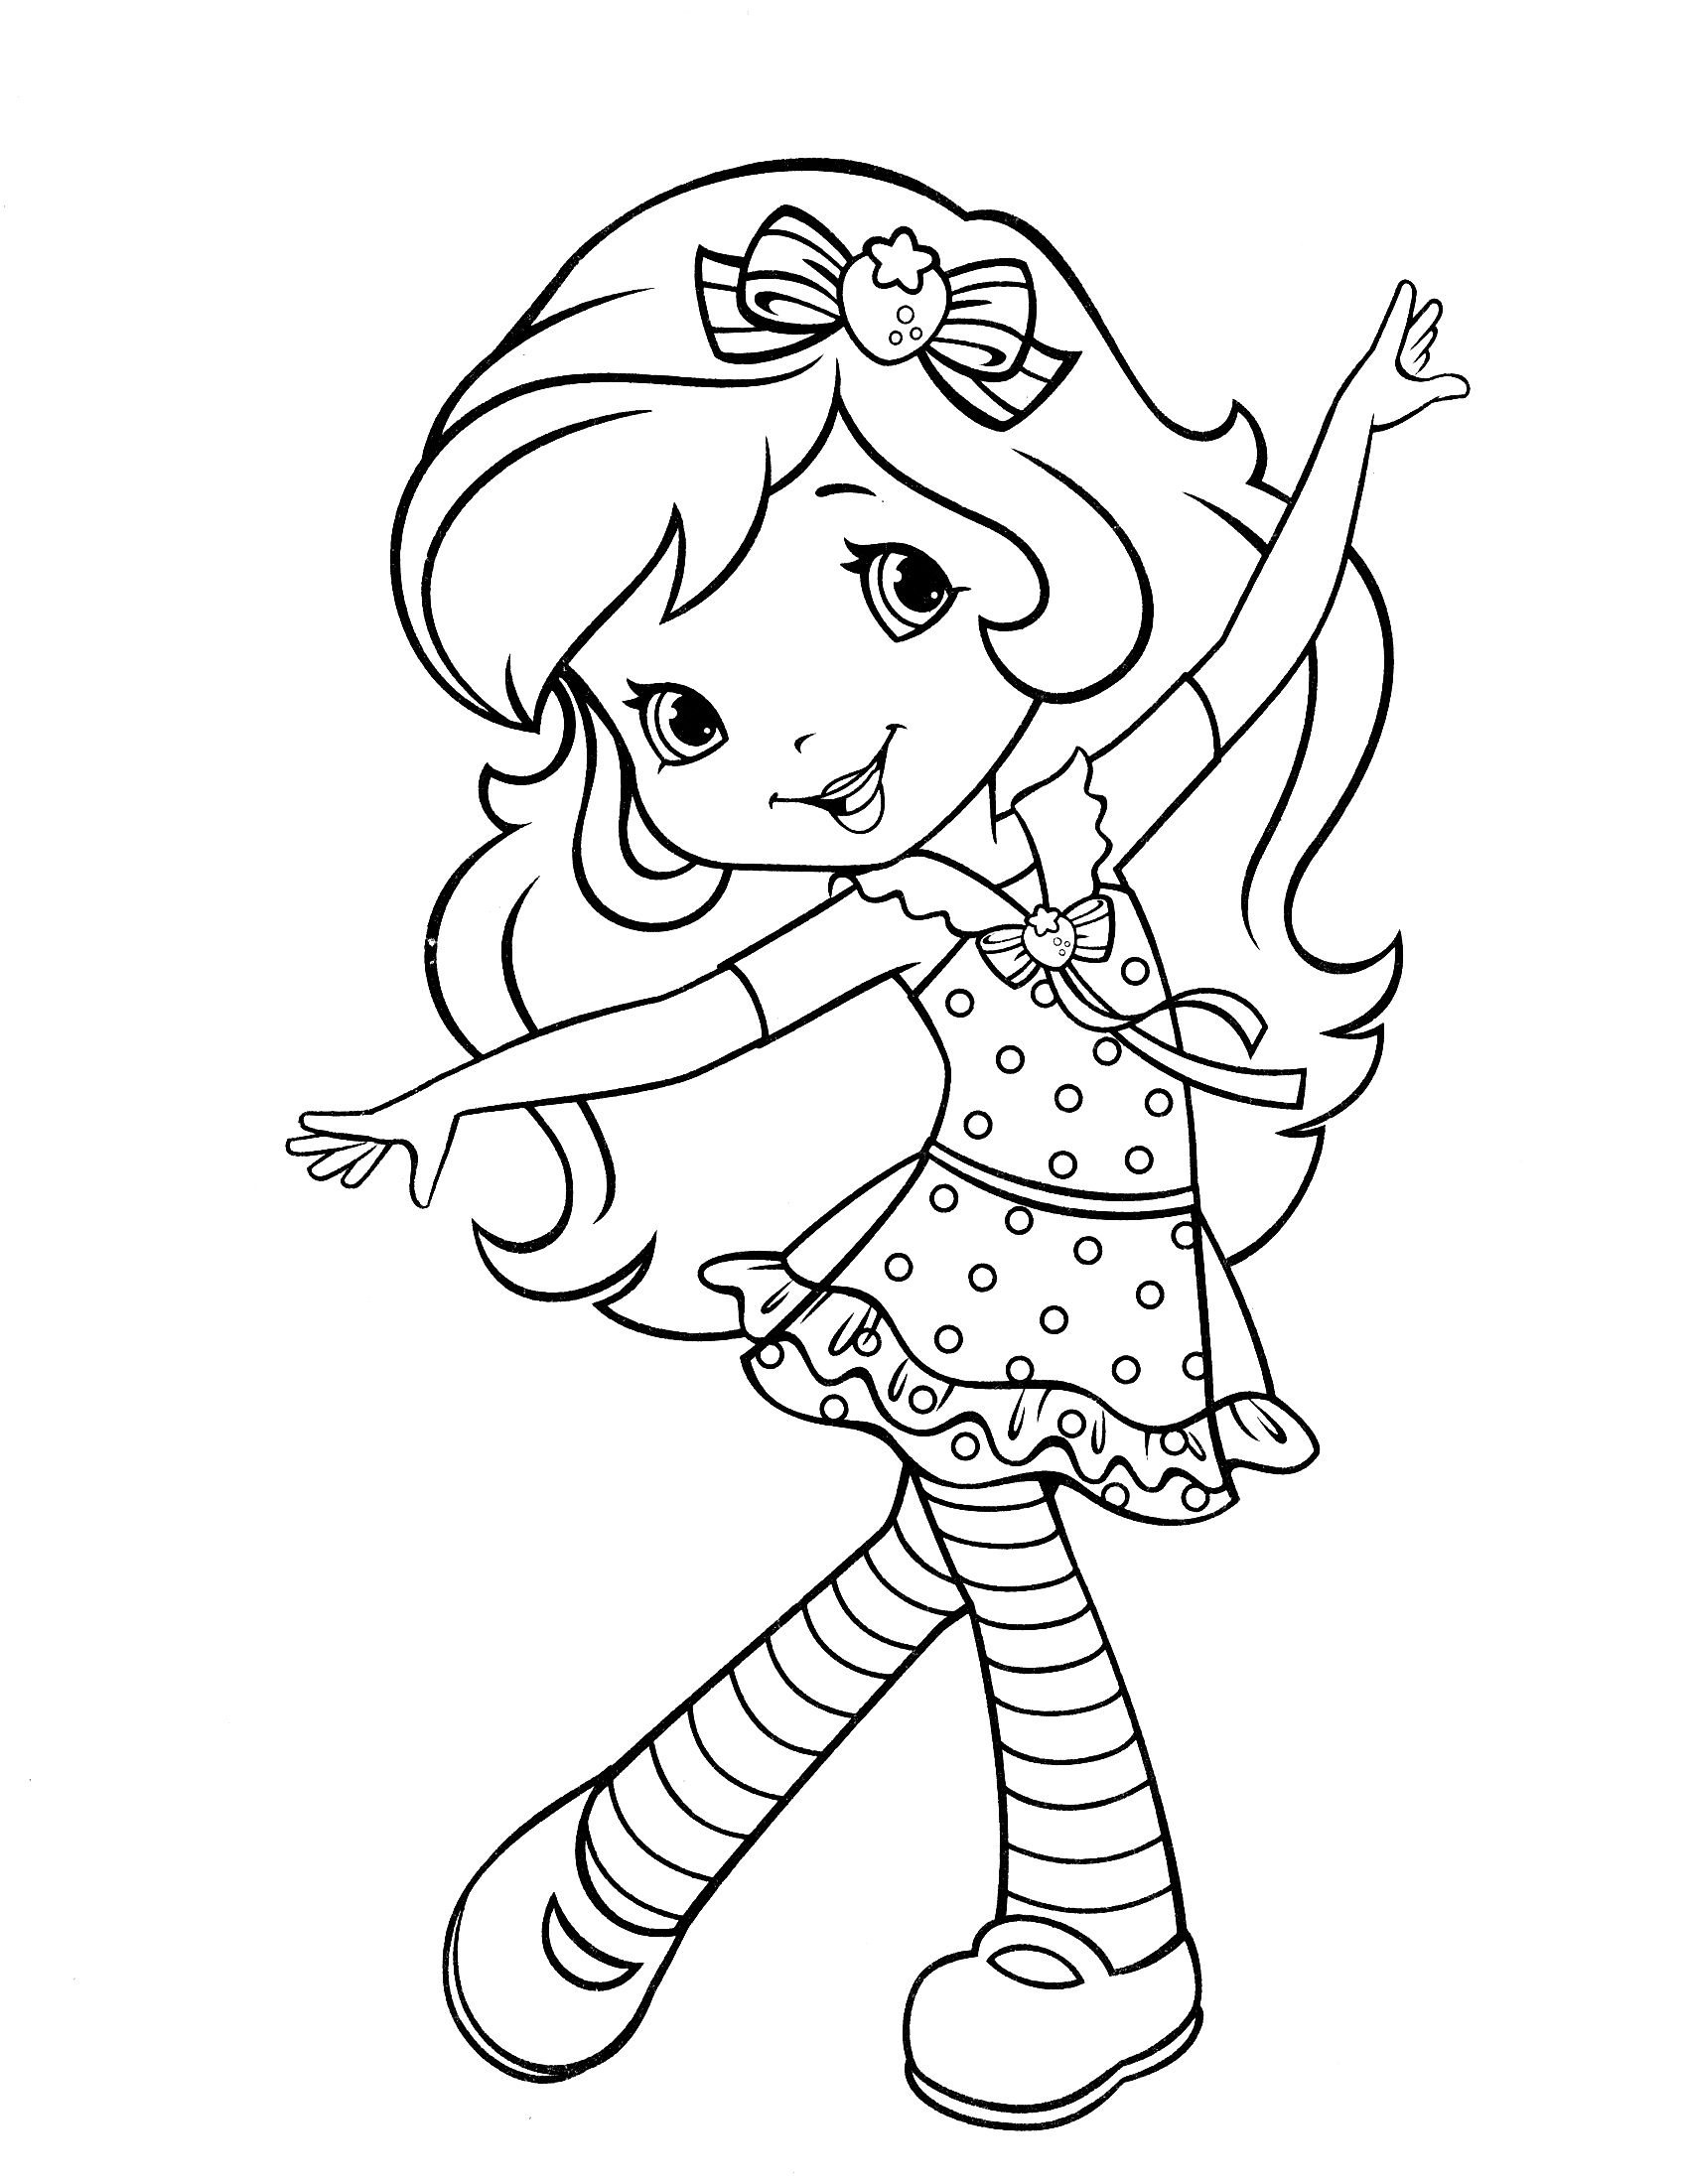 strawberry shortcake coloring pages Pesquisa Google